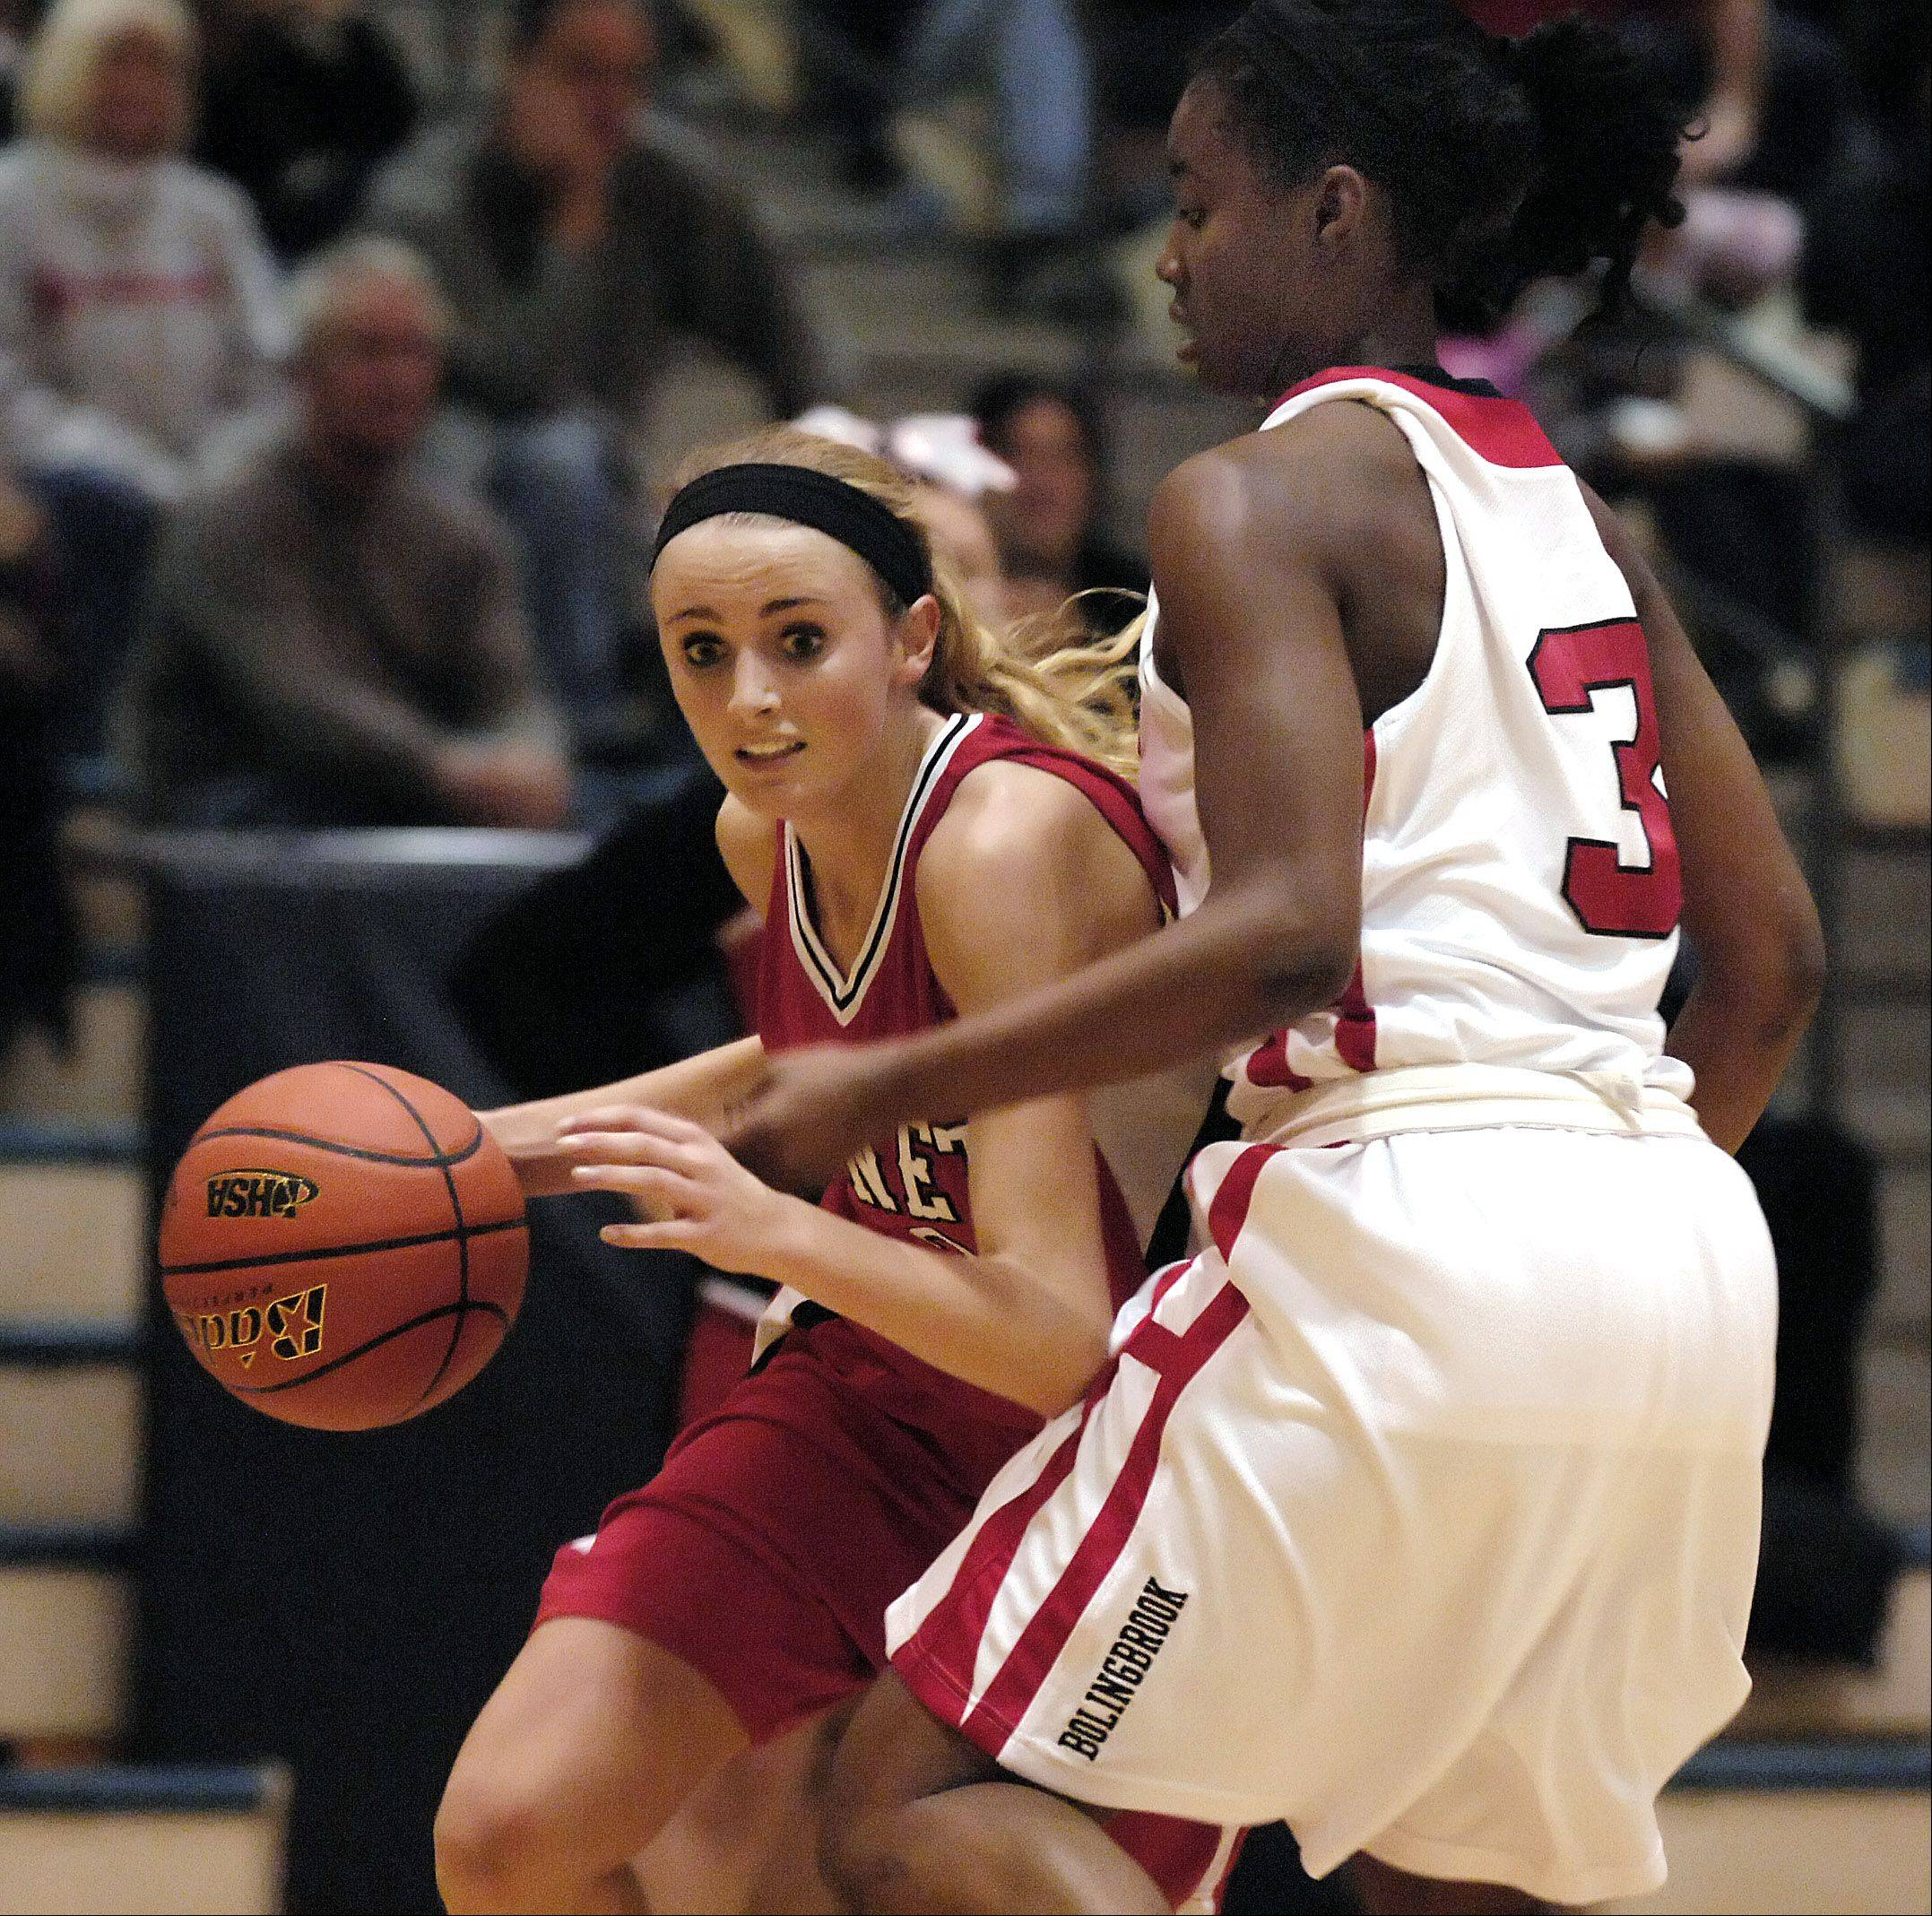 Benet Academy's Christine Prasse drives past Bolingbrook's Kennedy Cattenhead during Thursday's Class 4A girls basketball sectional final at Neuqua Valley high school in Naperville.